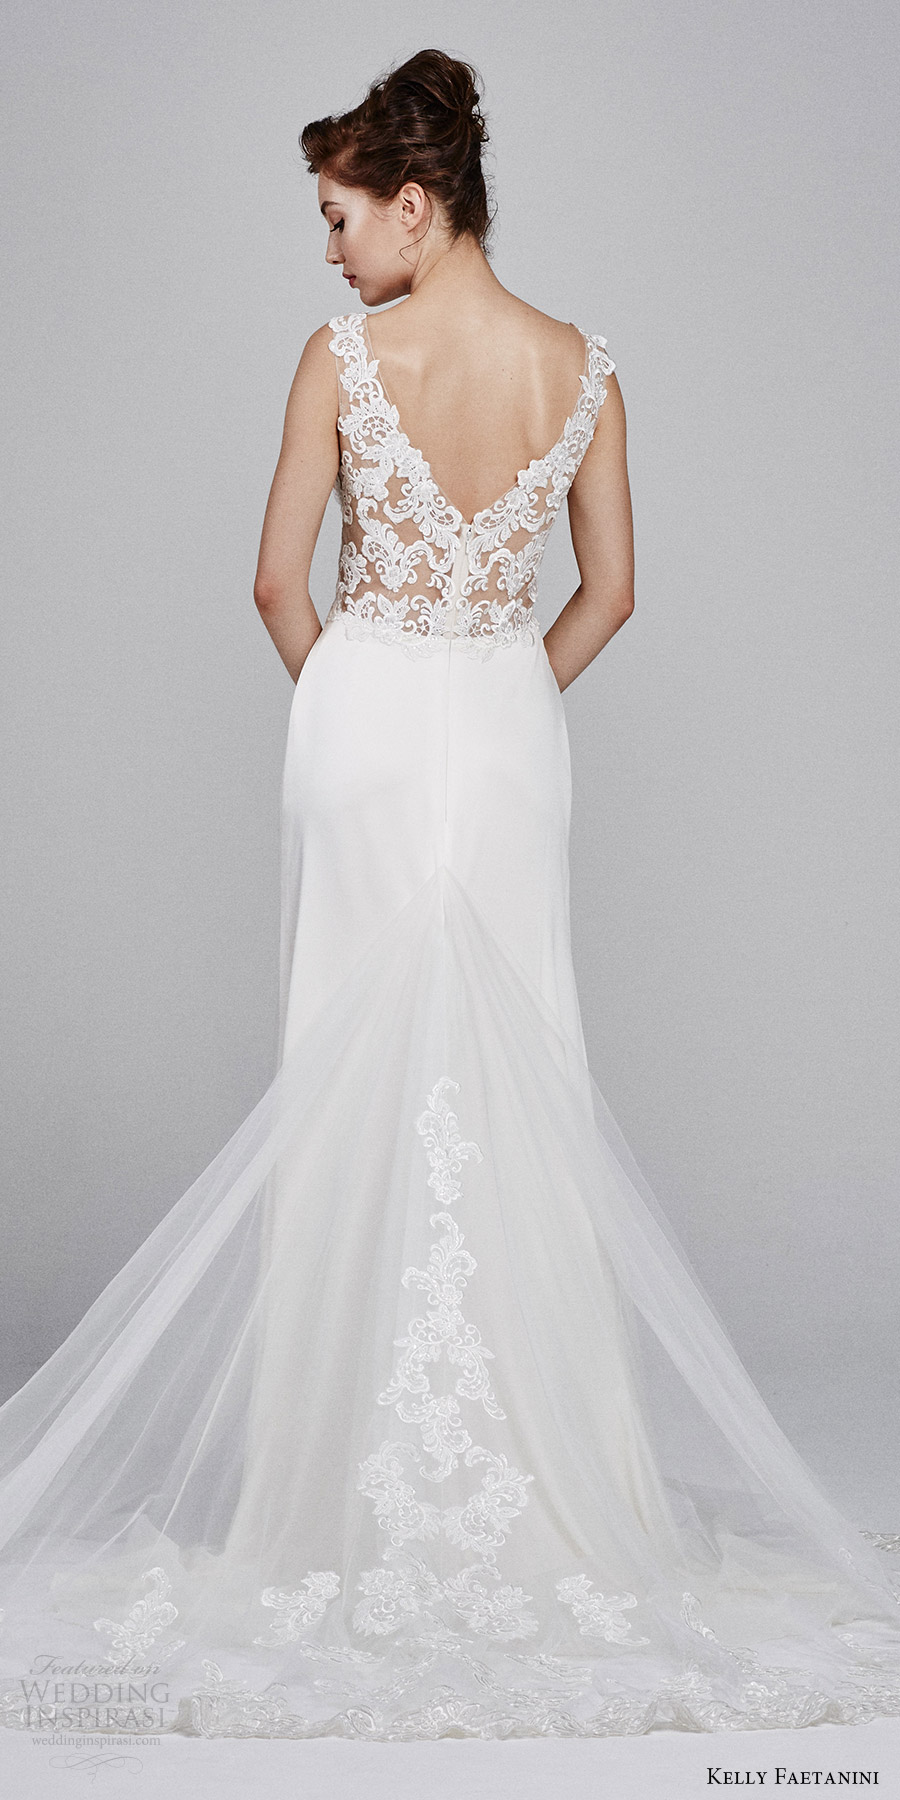 kelly faetanini bridal fall 2017 sleeveless vneck stretch satin lace bodice aline wedding dress (leilani) bv vback train